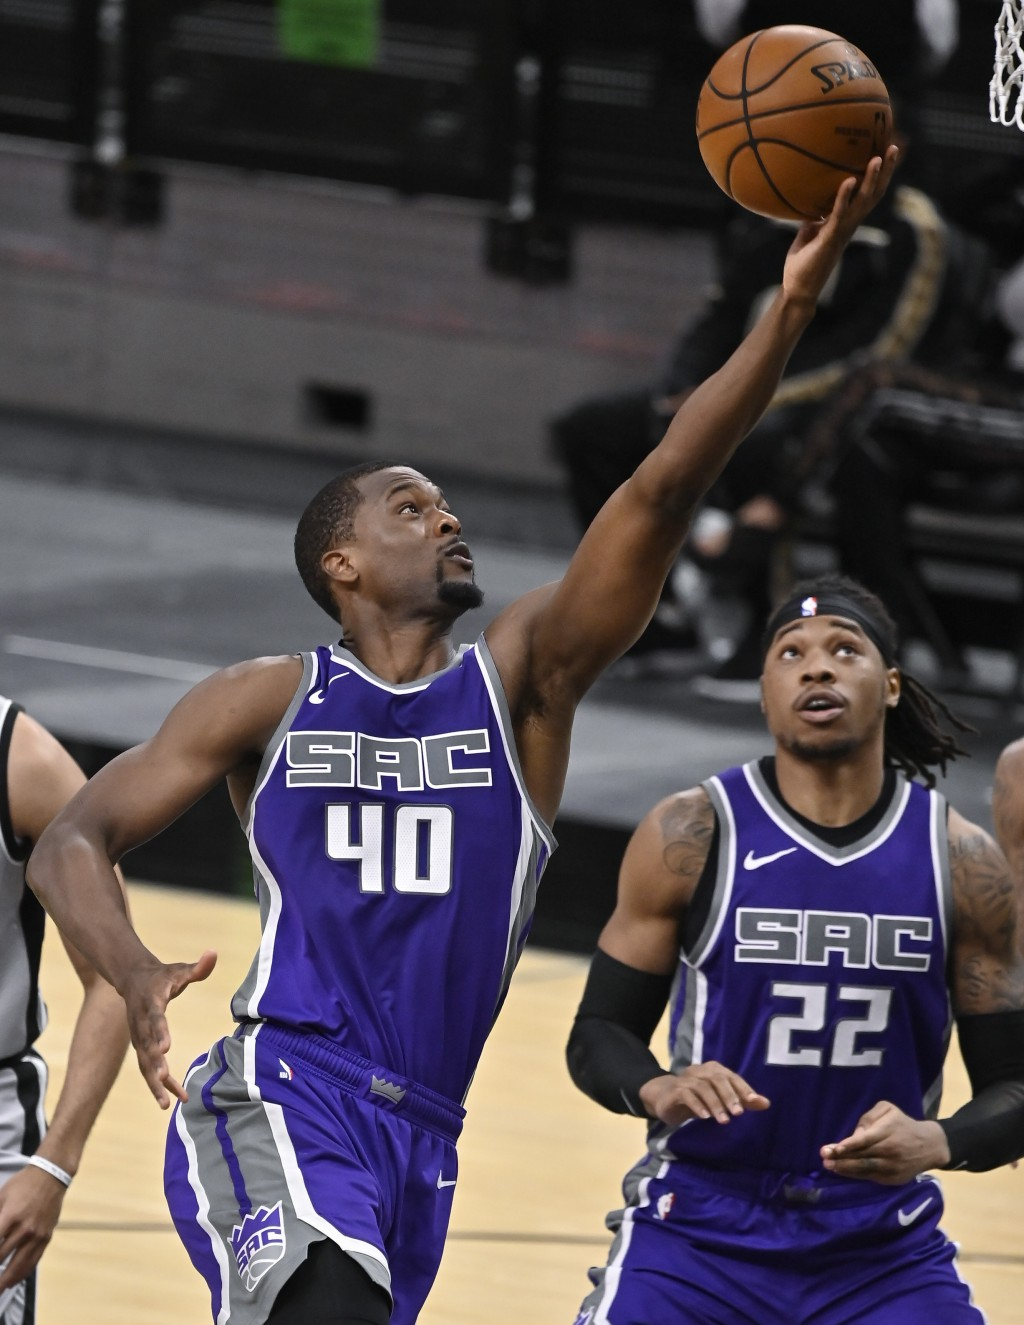 Sacramento Kings' Harrison Barnes (40) shoots as teammate Richaun Holmes looks on during the second half of an NBA basketball game against the San Ant...